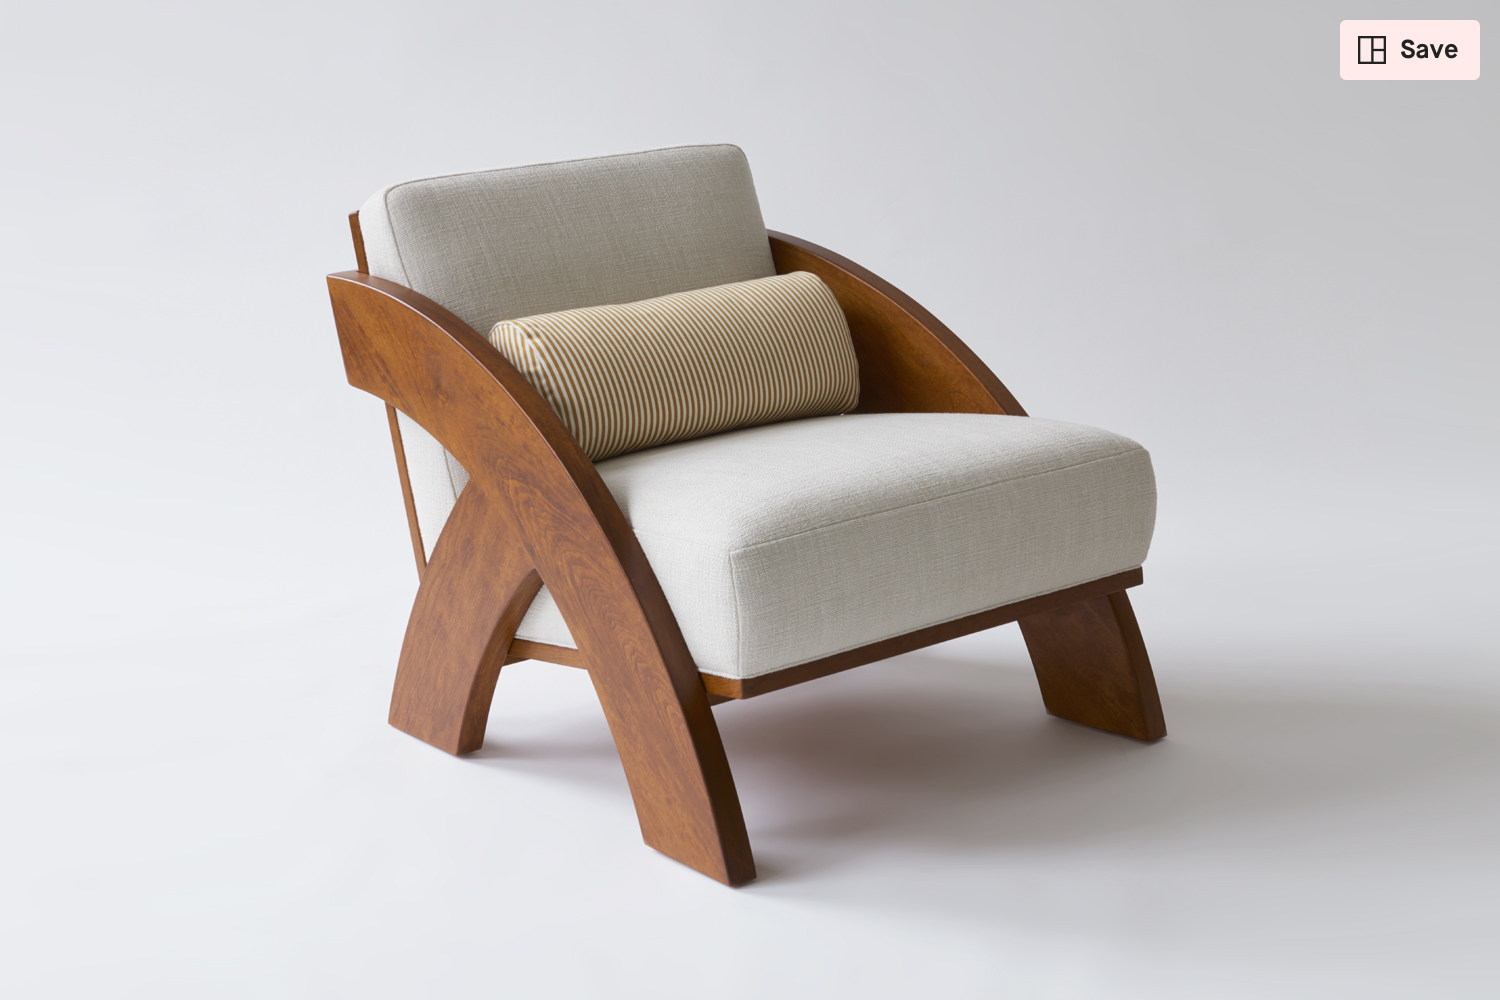 Arc Lounge Chair From Moving Mountains Clippings